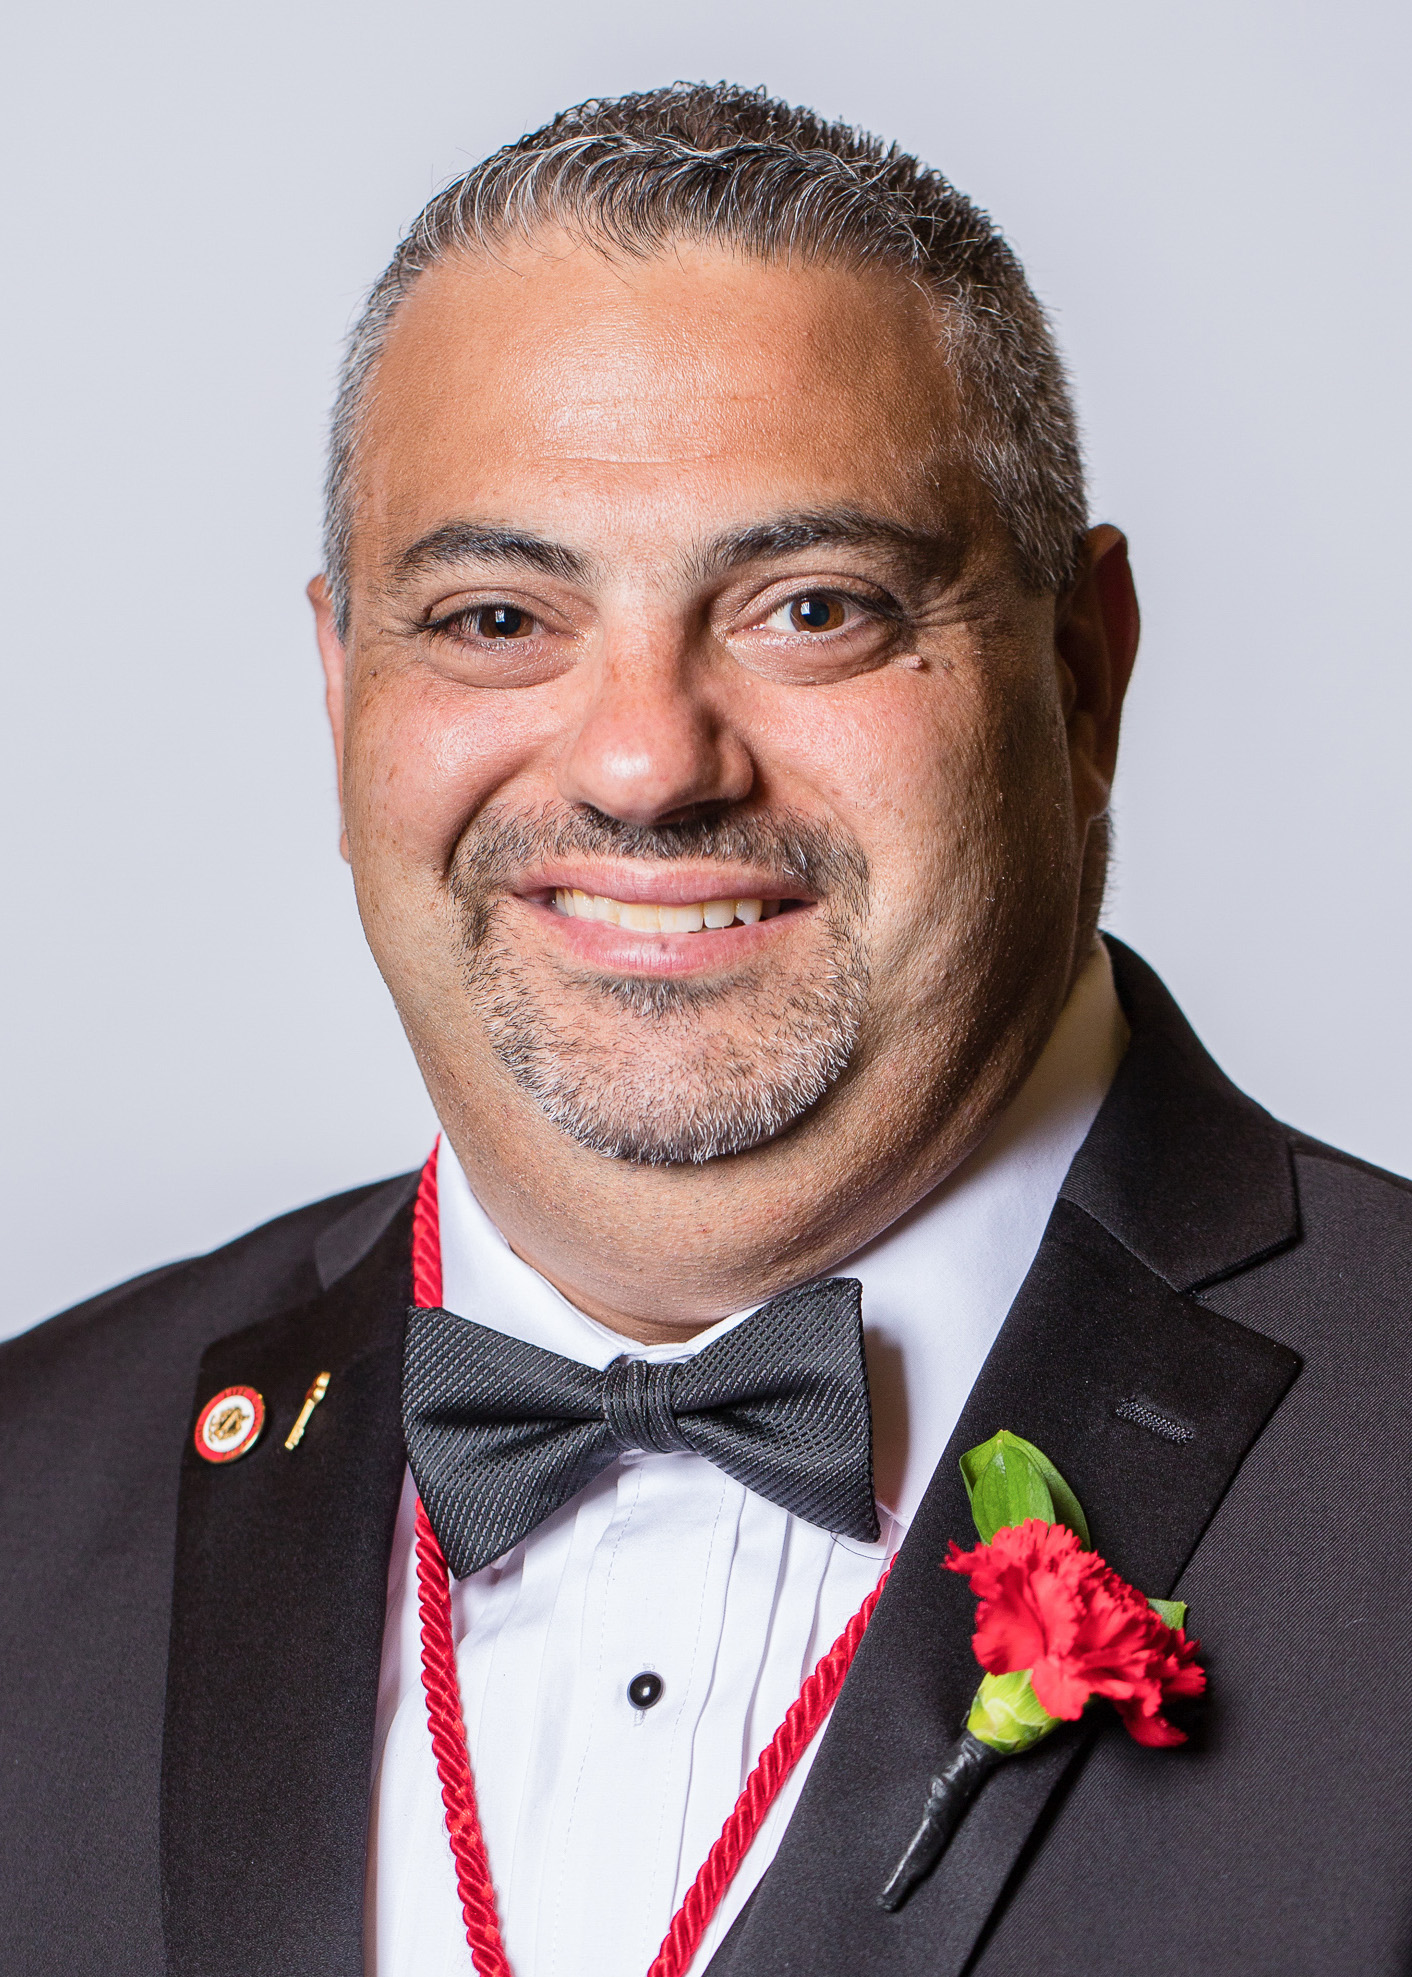 Rob J. Guarini